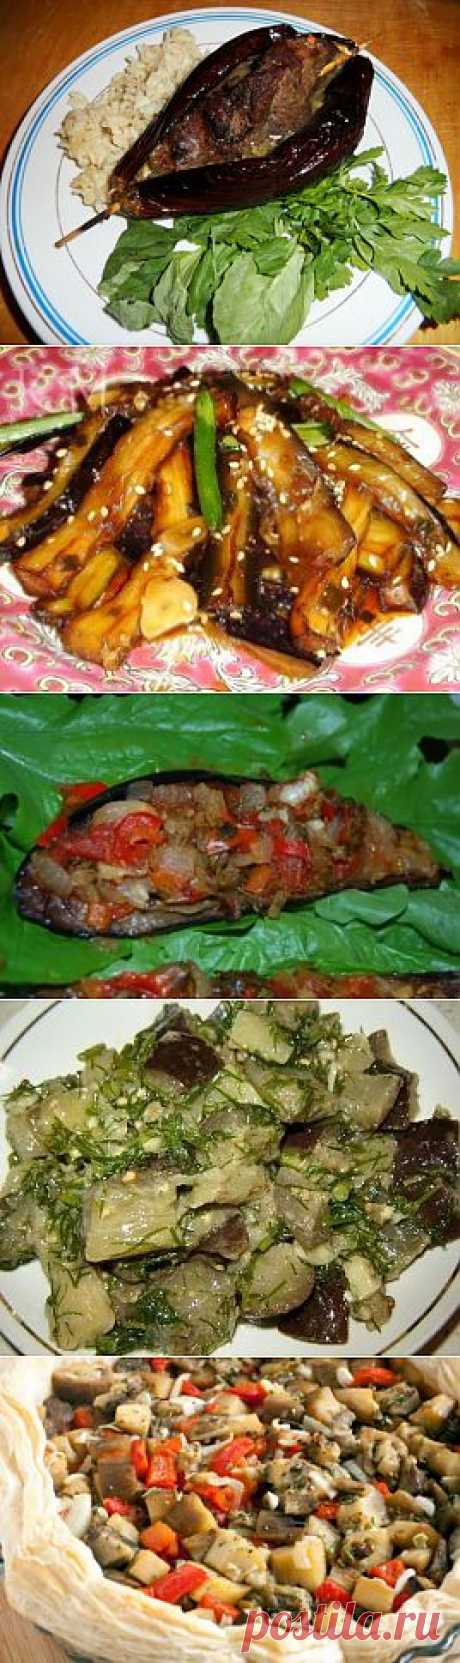 12 national dishes with eggplants from the different countries